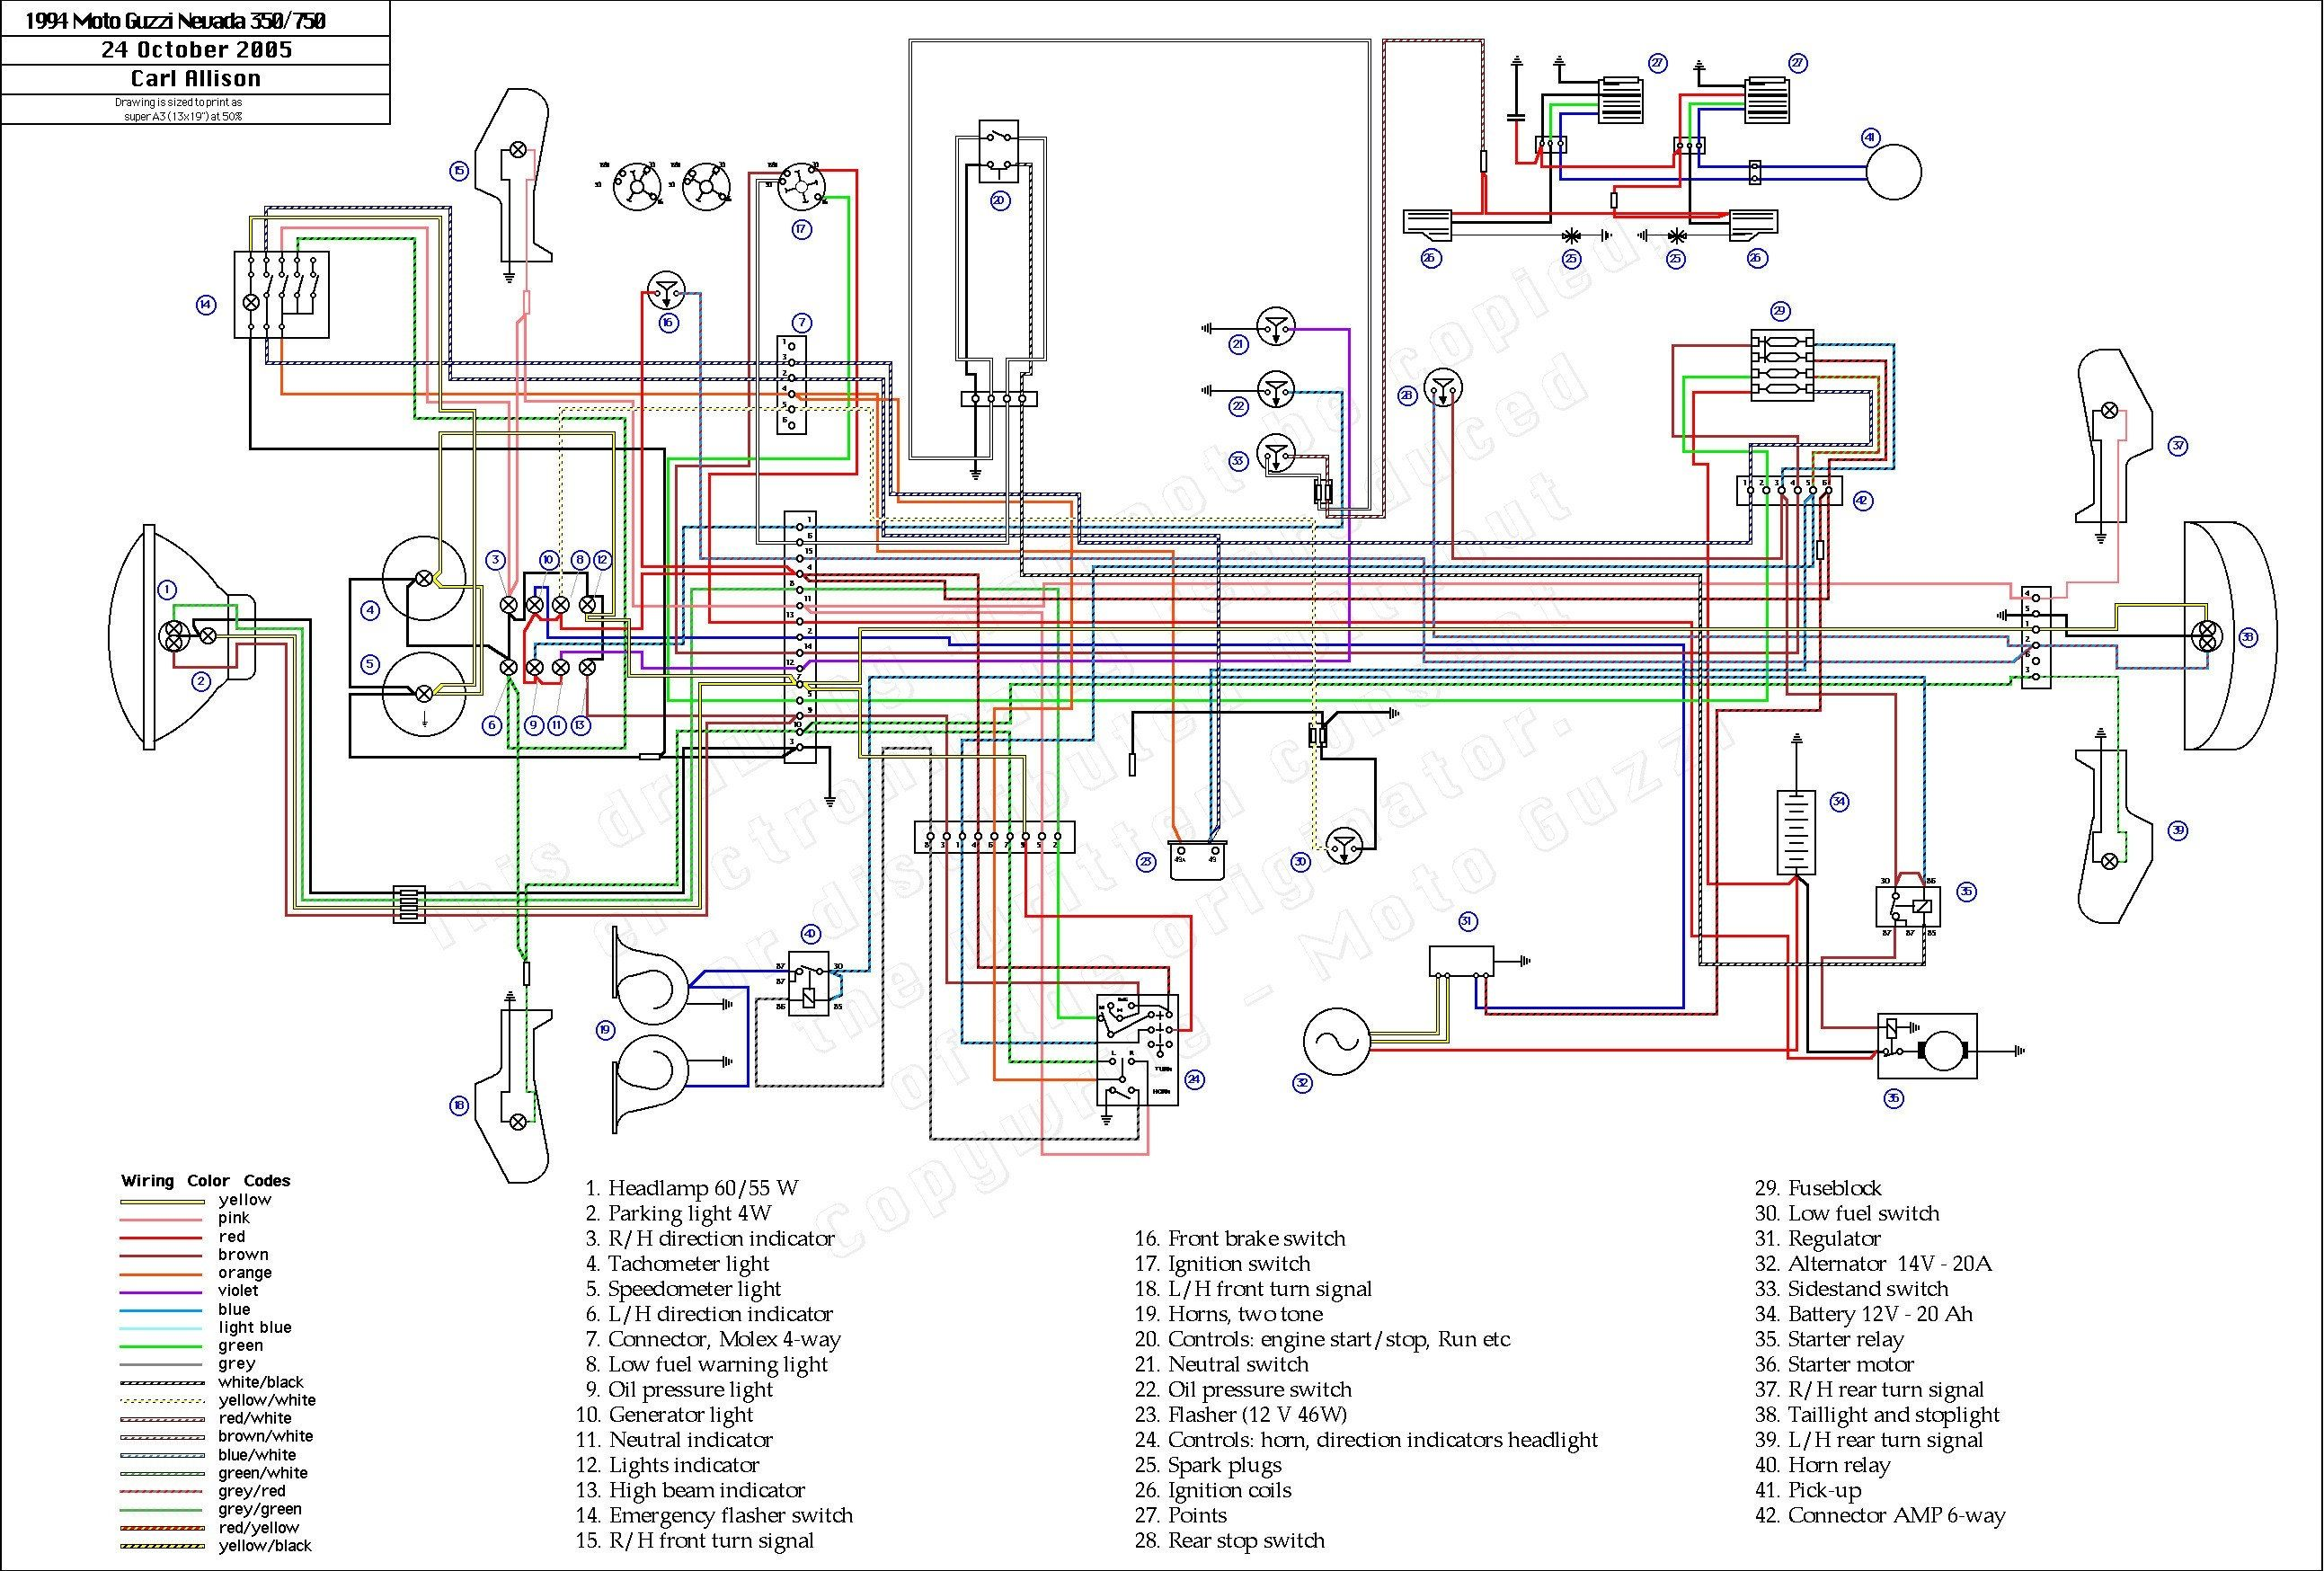 Swell 97 Banshee Wiring Diagram Basic Electronics Wiring Diagram Wiring Cloud Oideiuggs Outletorg